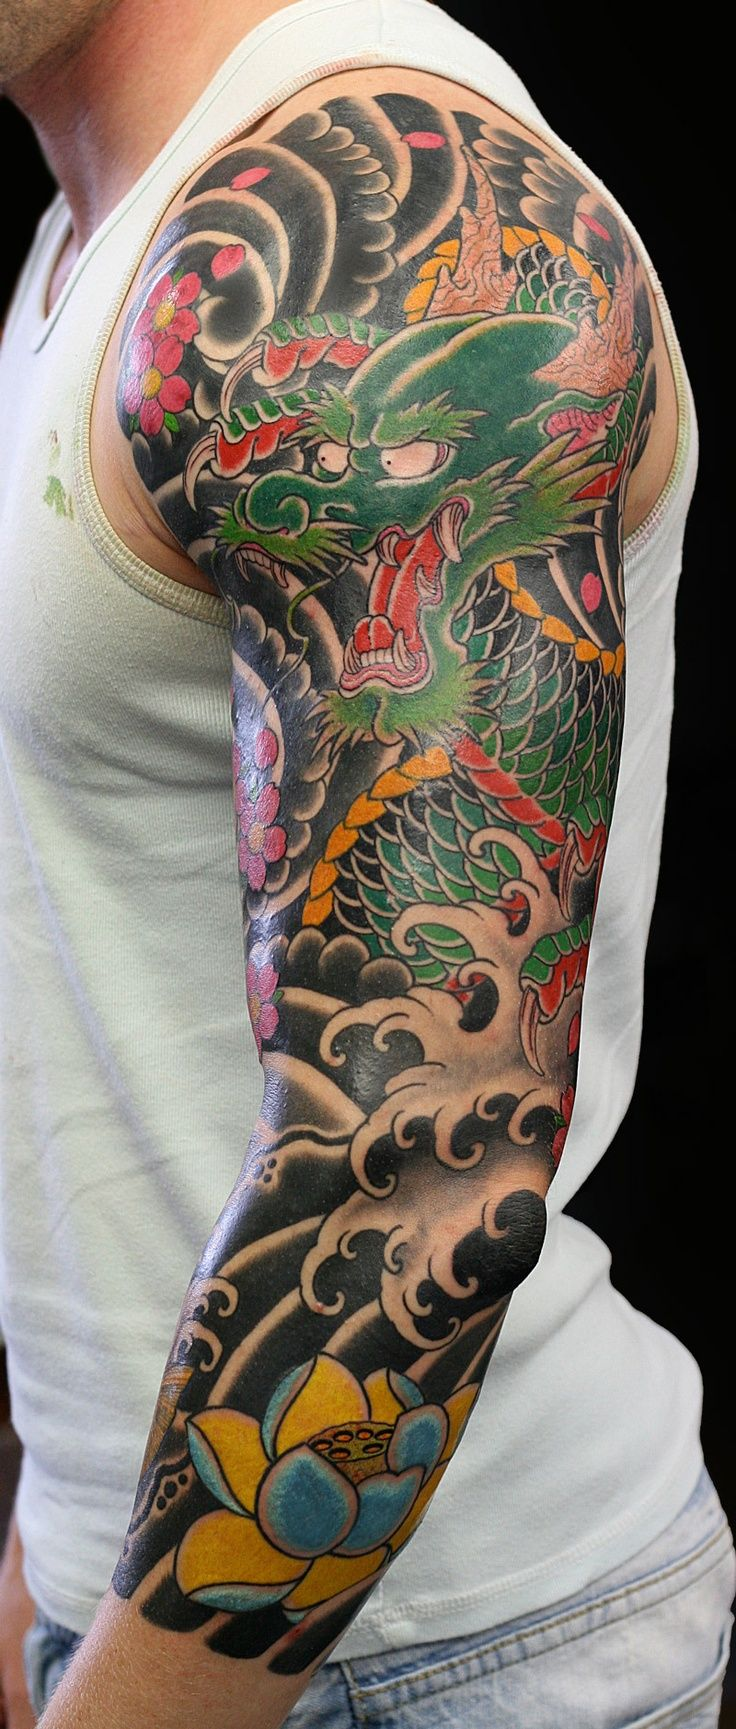 45 amazing japanese tattoo designs tattoo easily - Note Dragon Warrior And Floral Design Dragon Tattoos Japanese Tattoos Rhys Gordon Sydney Tattoo Studios